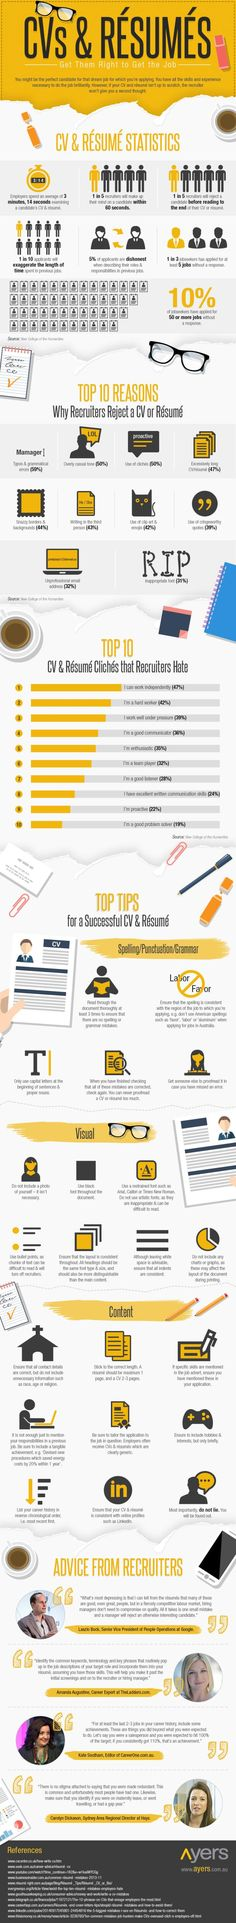 Building The Ultimate Resume Using Science Infographic Perfect - how to perfect a resume